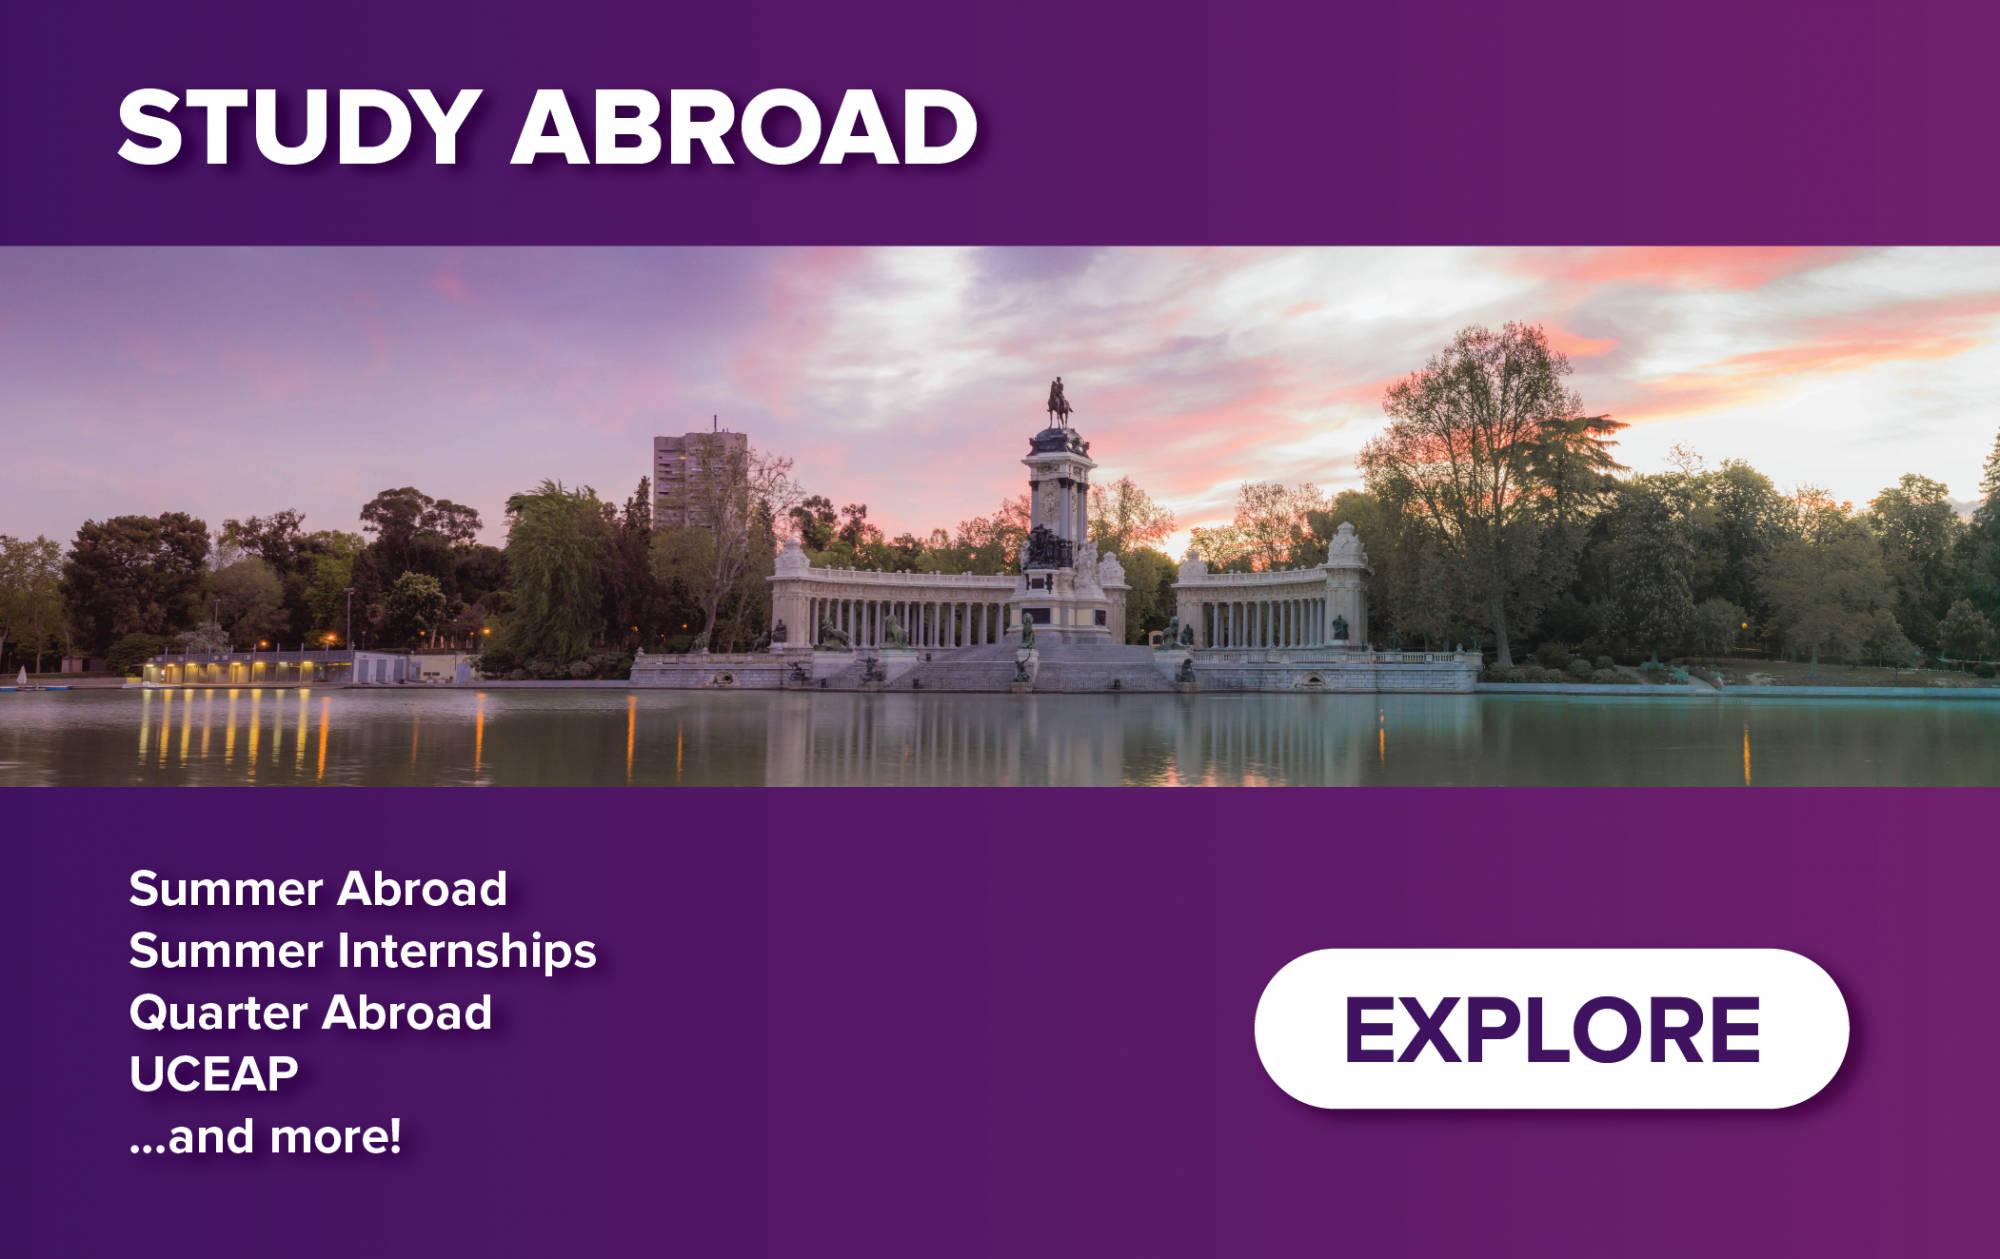 Homepage Teaser Image - Study Abroad Portal - Summer Abroad; Summer Internships; Quarter Abroad; UCEAP; and more